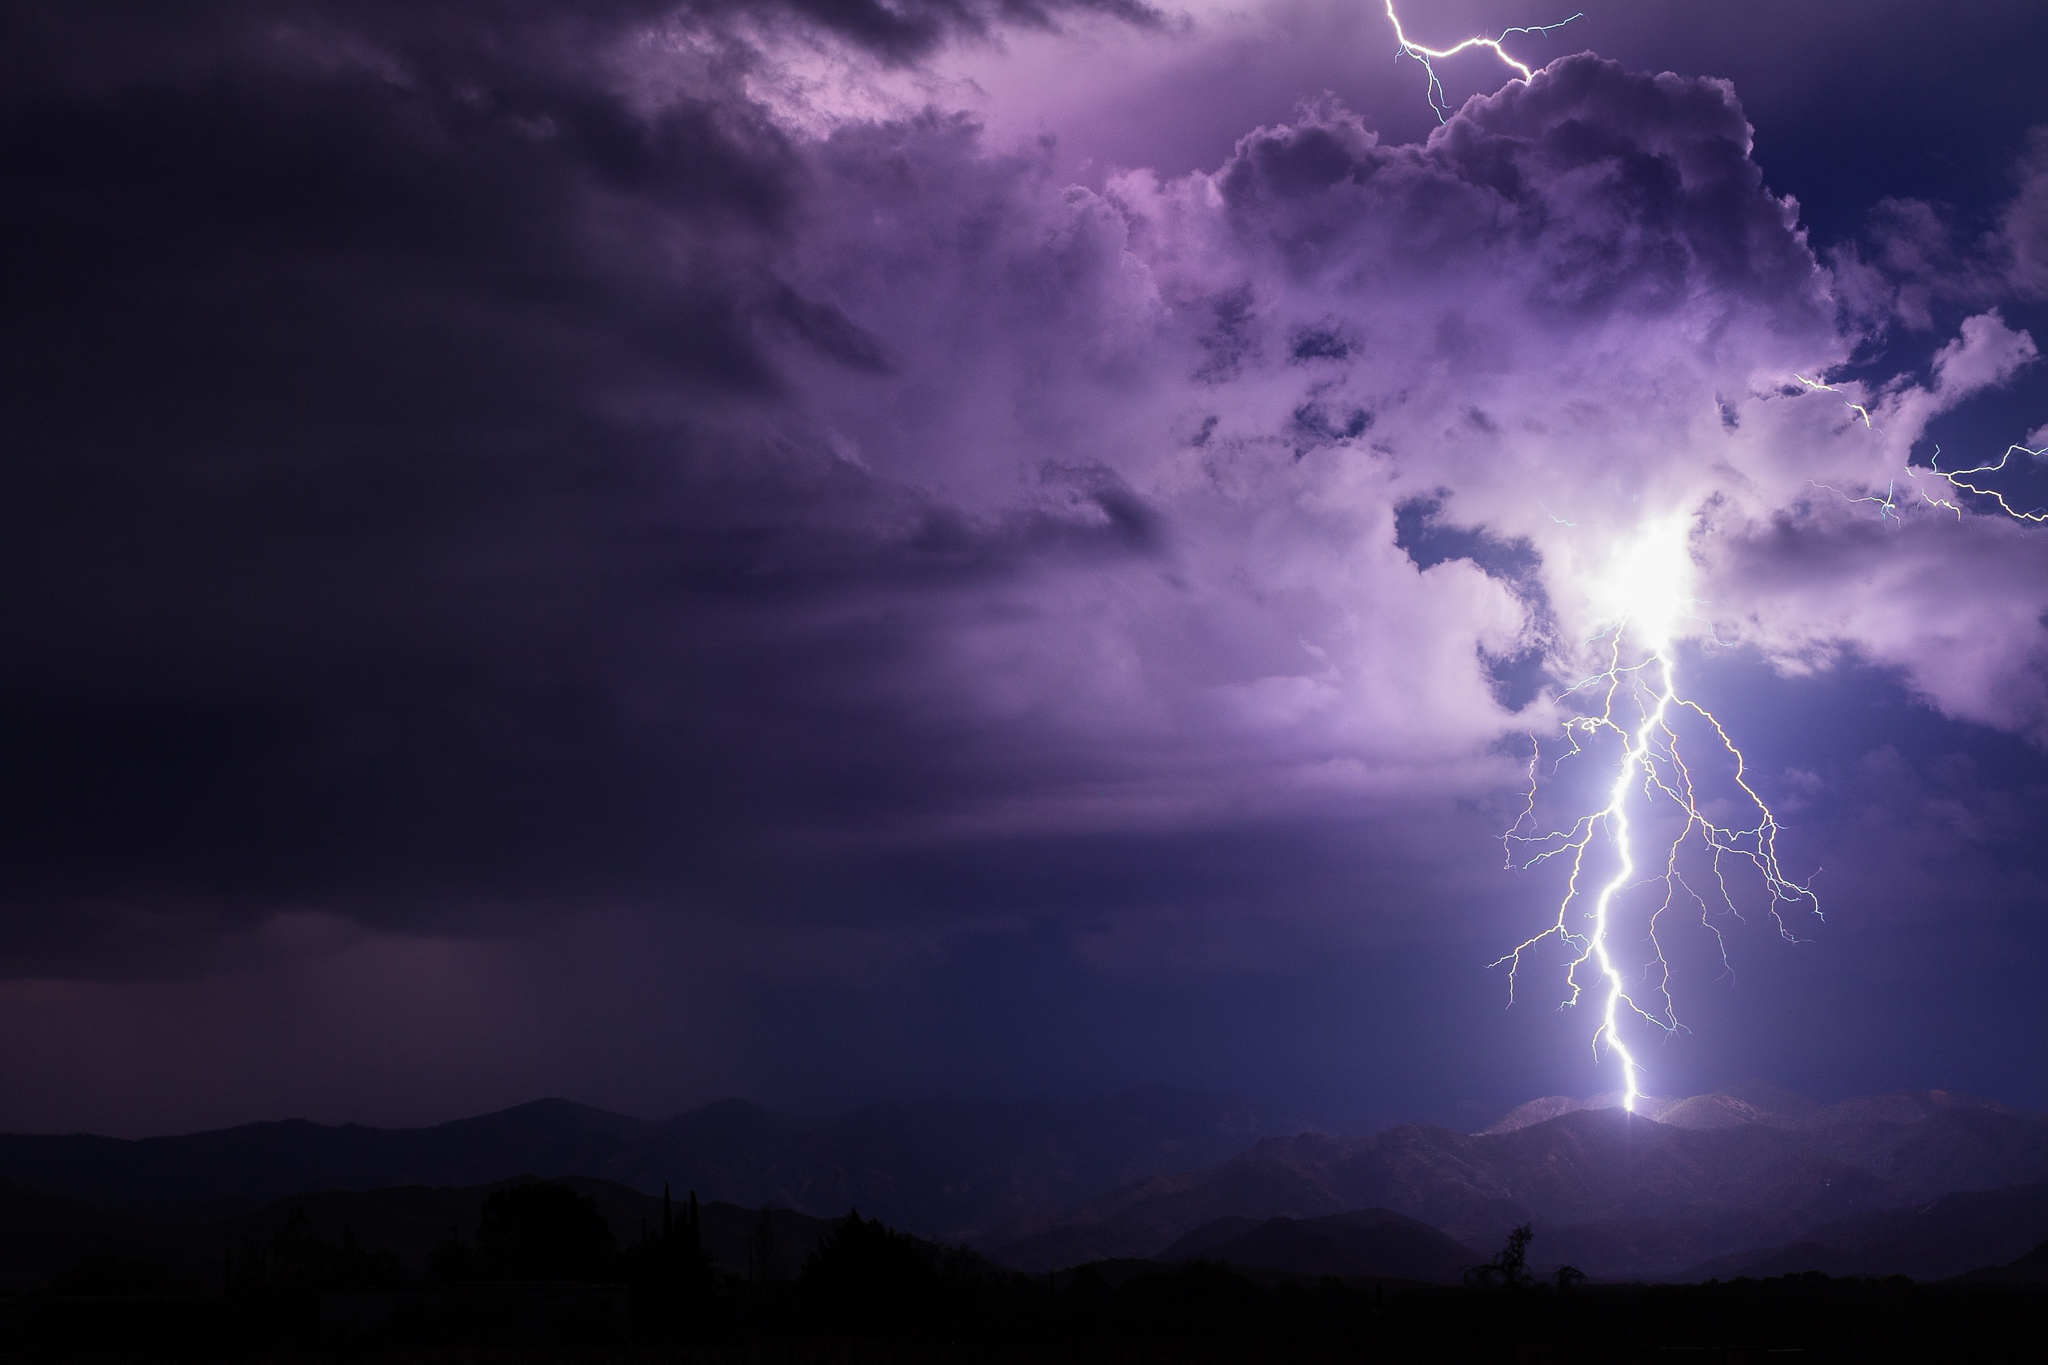 SITE SAFETY MEETING – TOOL BOX TALK: LIGHTNING SAFETY – MYTHS AND FACTS